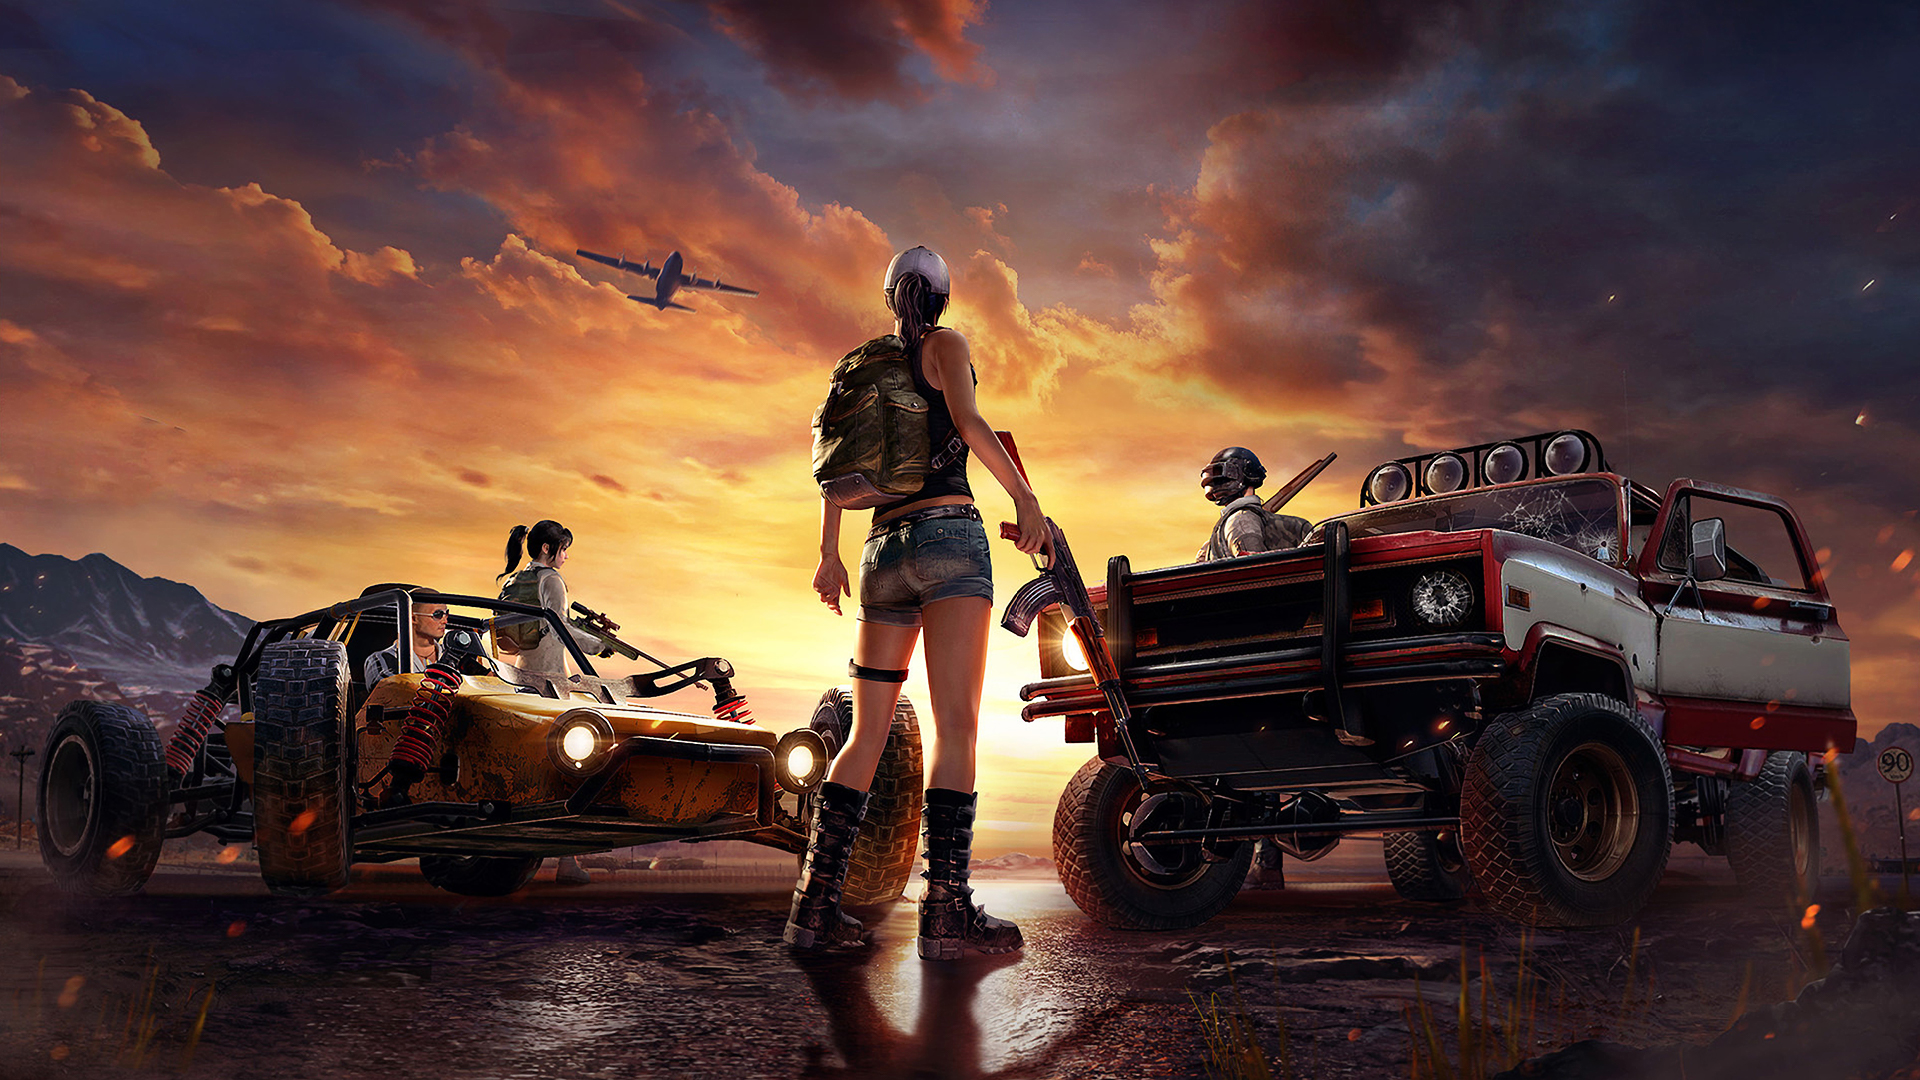 Playerunknown S Battlegrounds Wallpapers: 1366x768 PlayerUnknowns Battlegrounds Art 1366x768